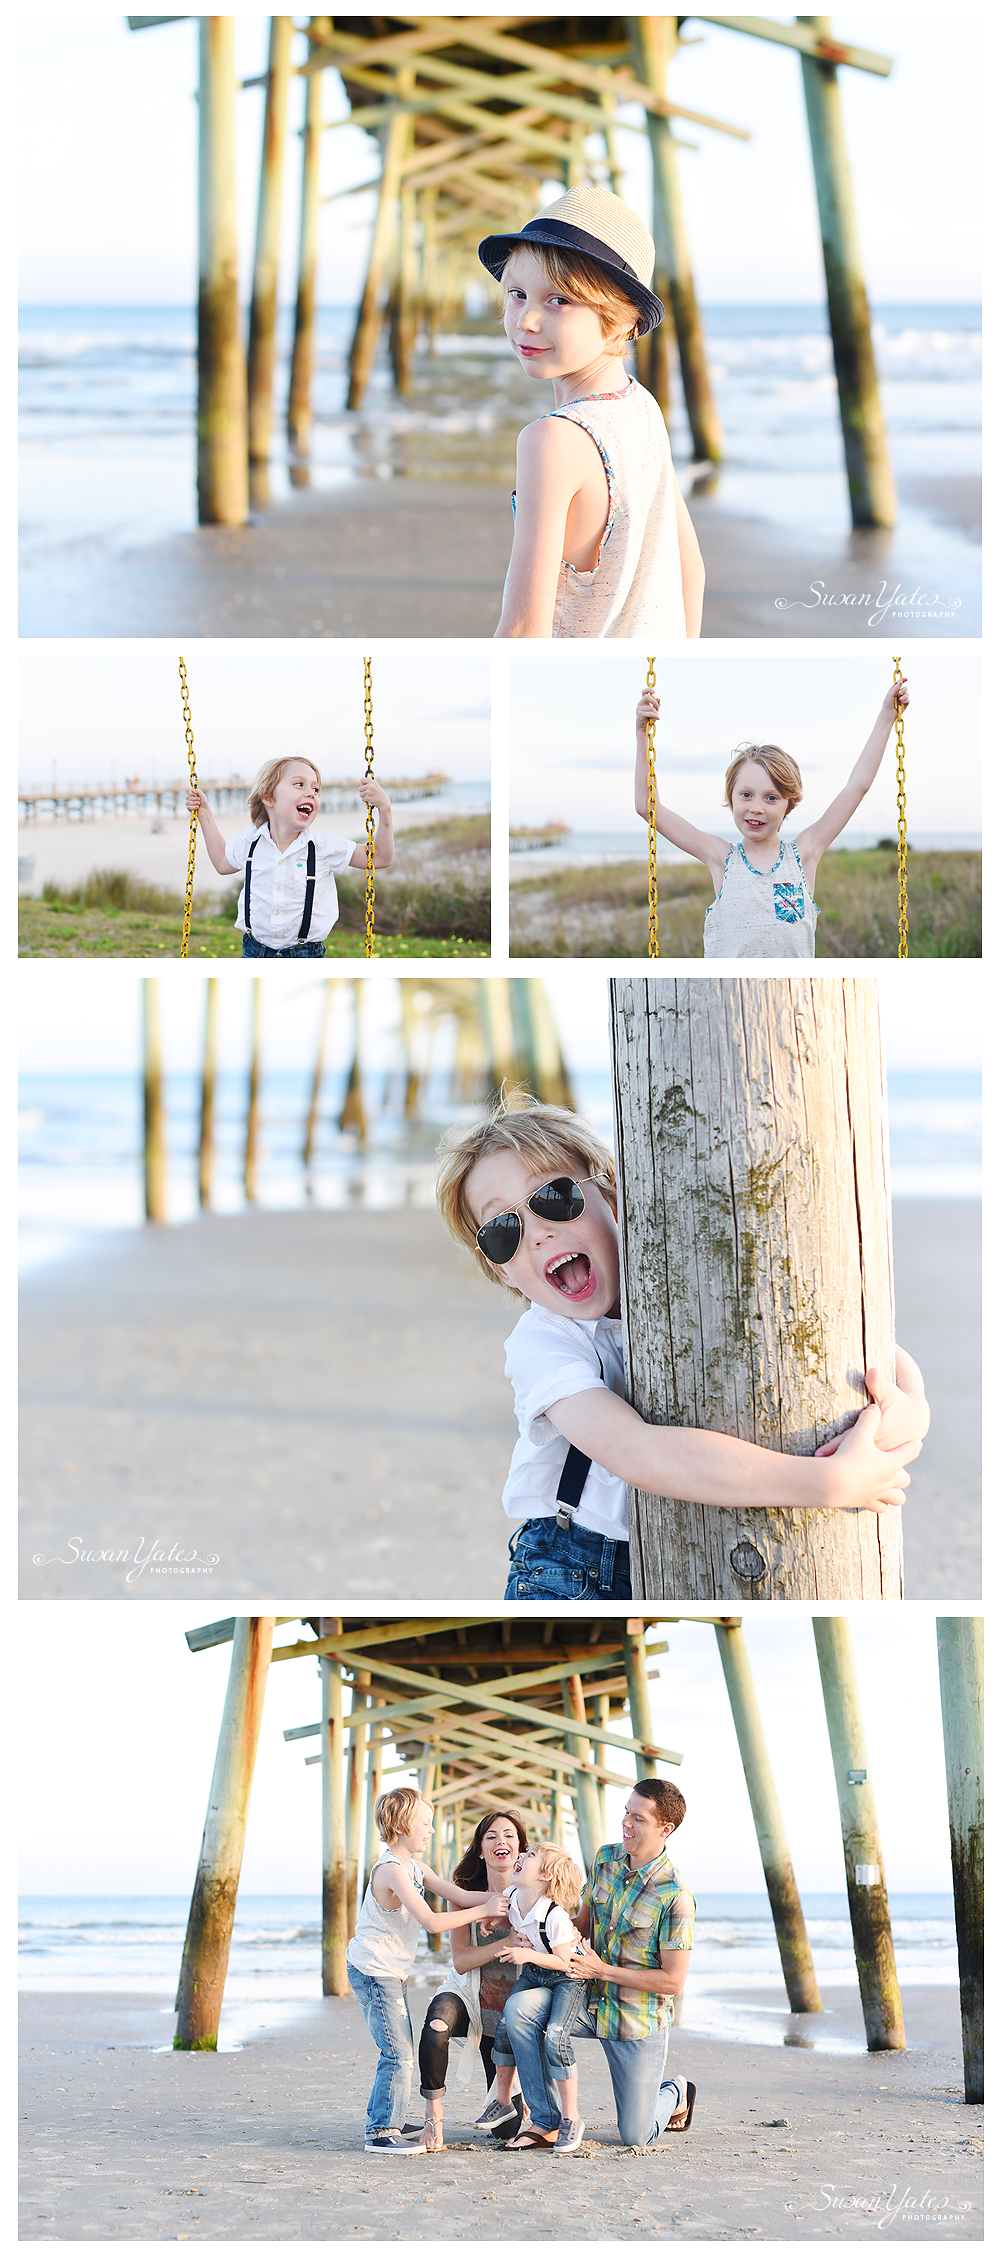 photo session at Oceanana Pier in Atlantic Beach, NC